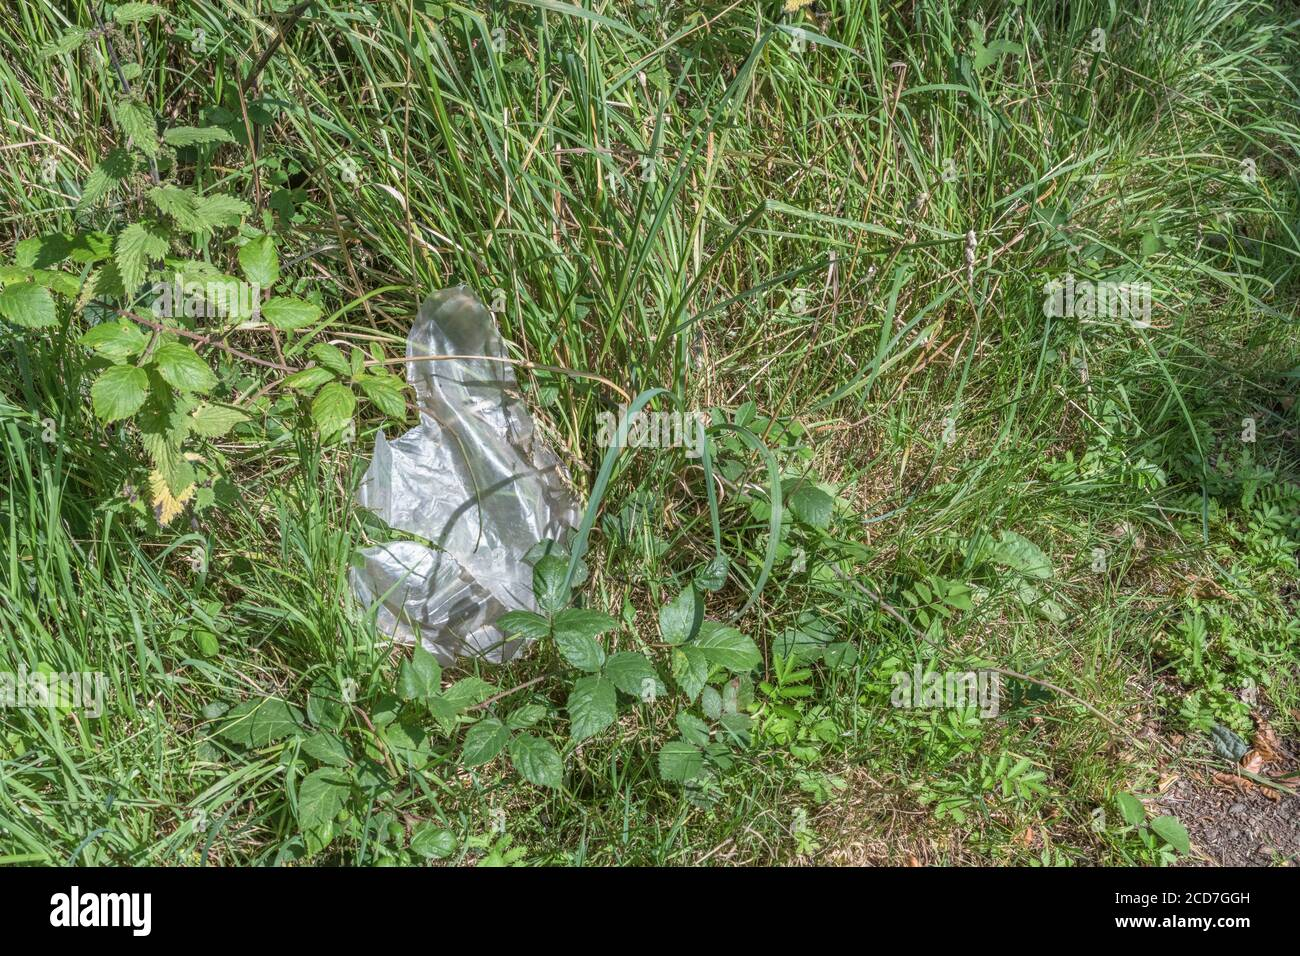 Clear wrap plastic sheet discarded in rural hedgerow. Metaphor plastic pollution, environmental pollution, war on plastic waste, plastic rubbish. Stock Photo